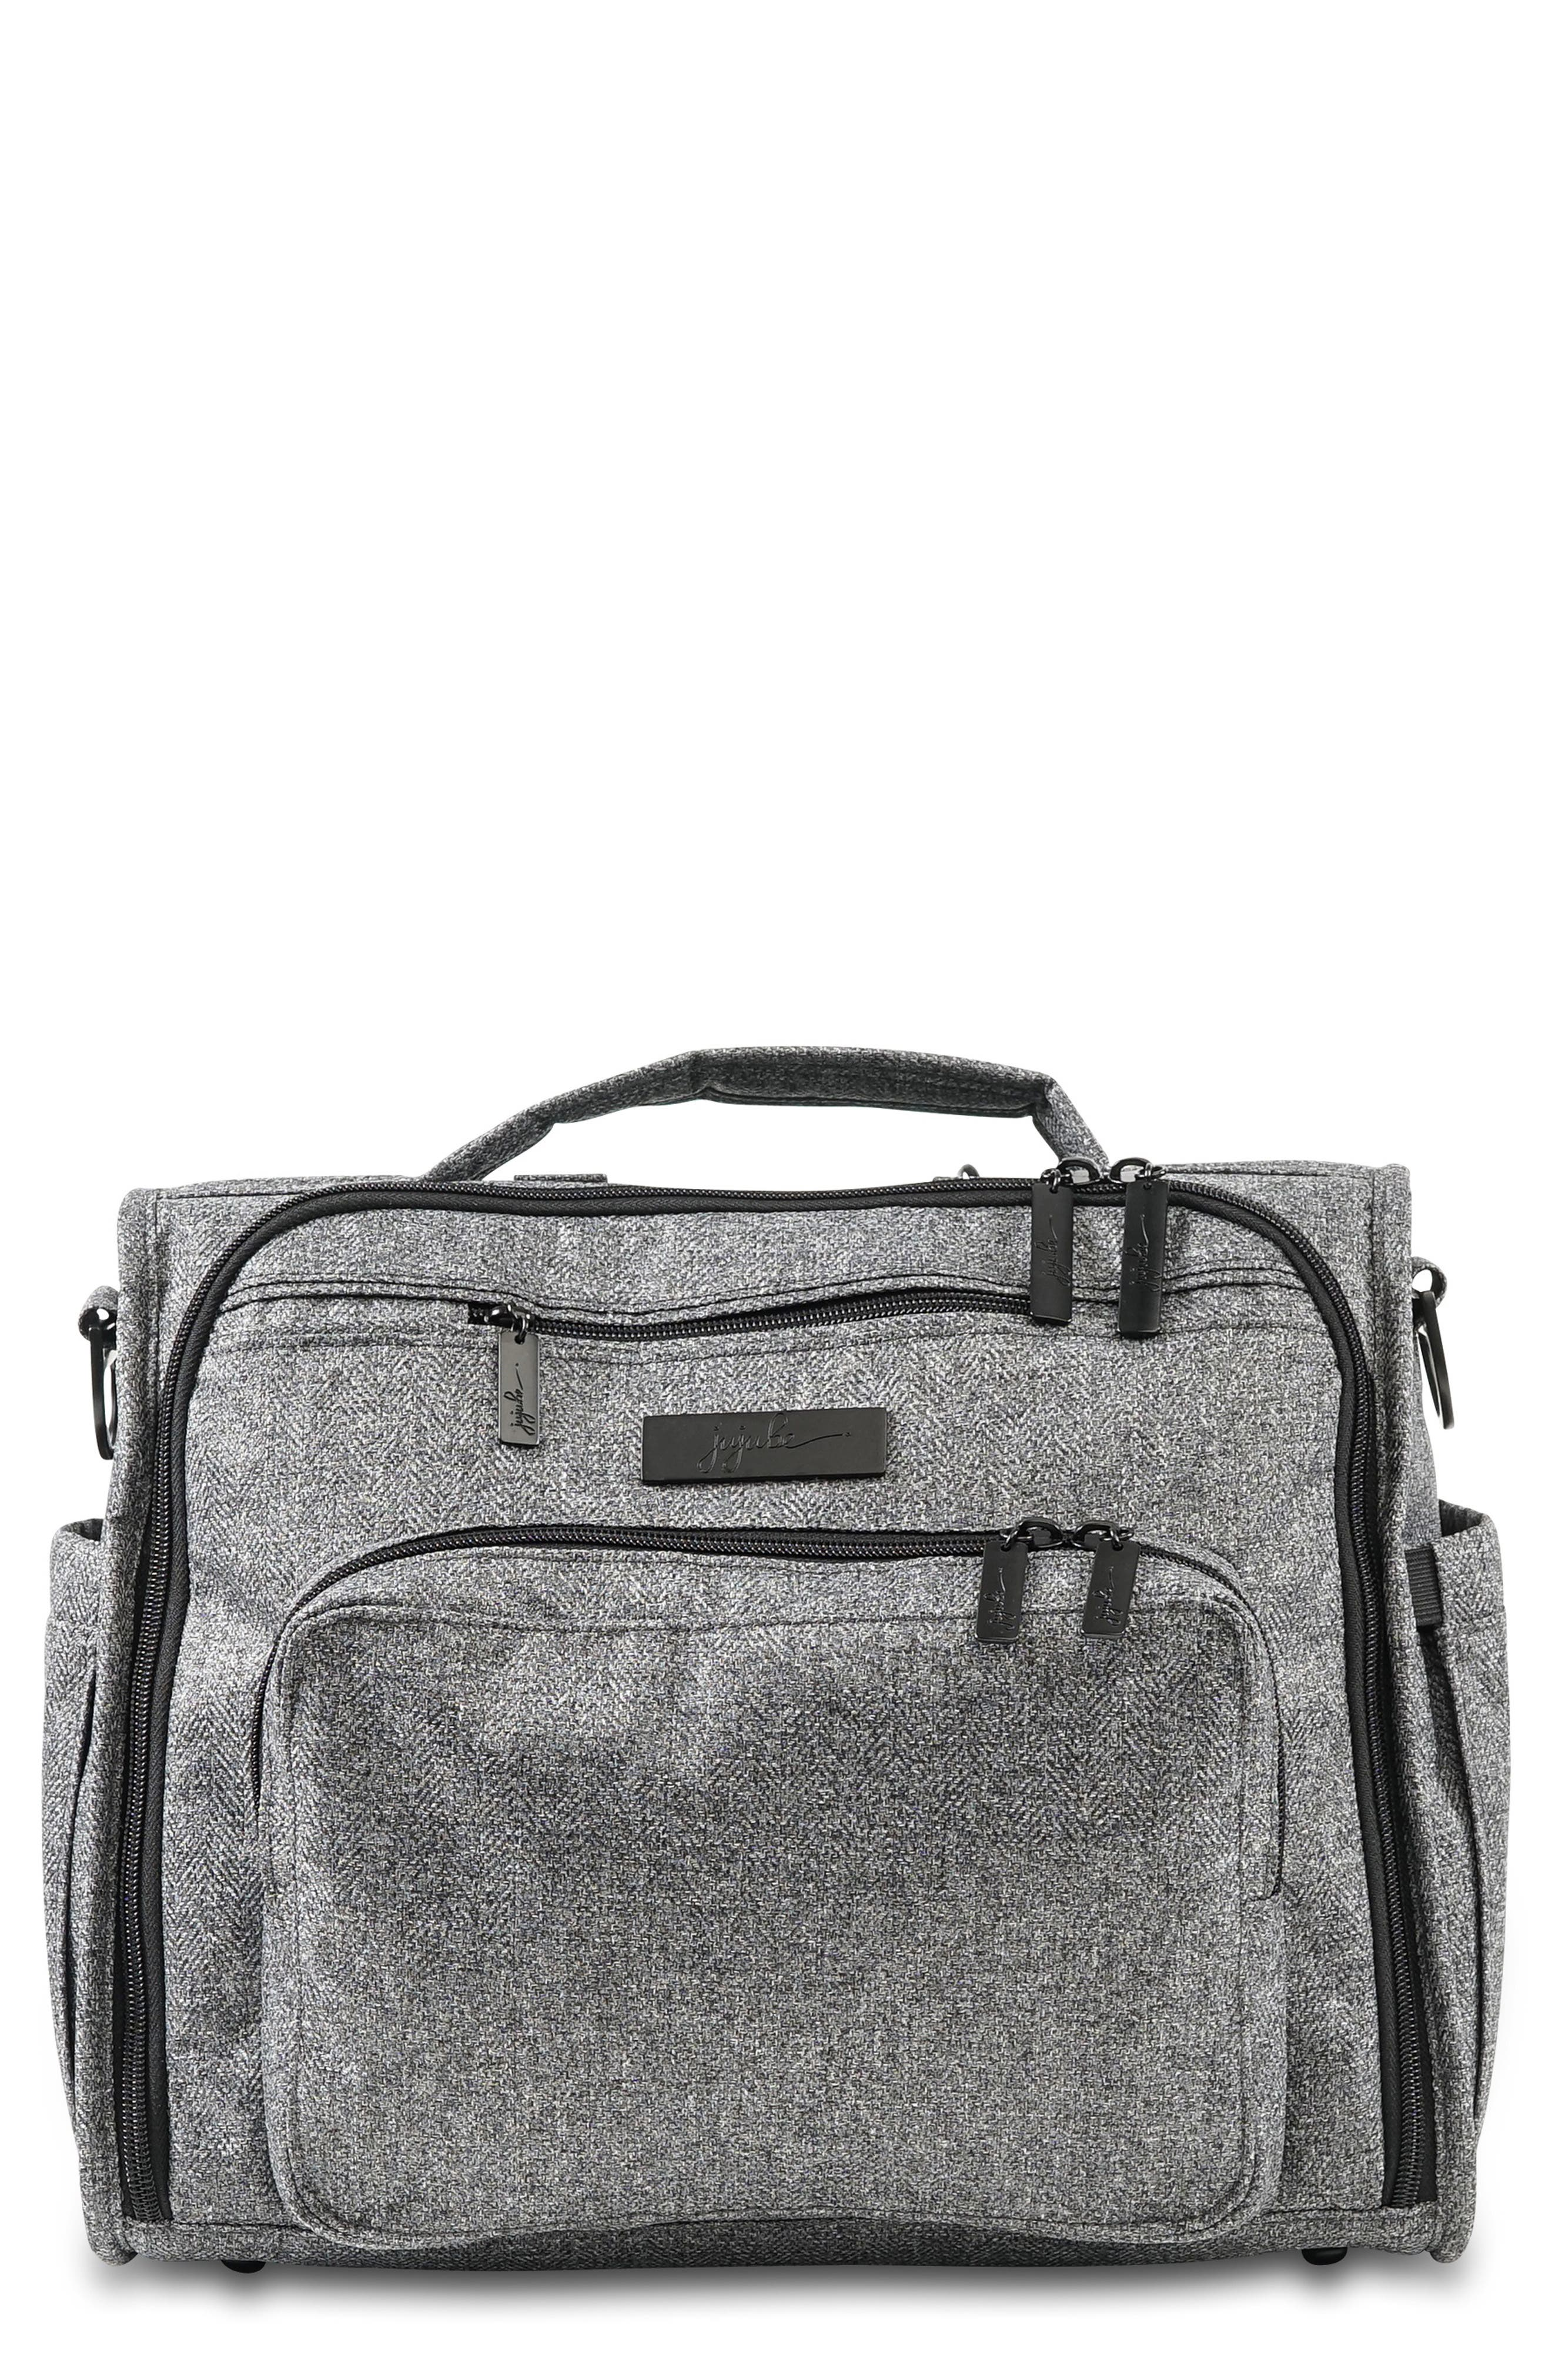 'BFF - Onyx Collection' Diaper Bag,                         Main,                         color, GRAY MATTER